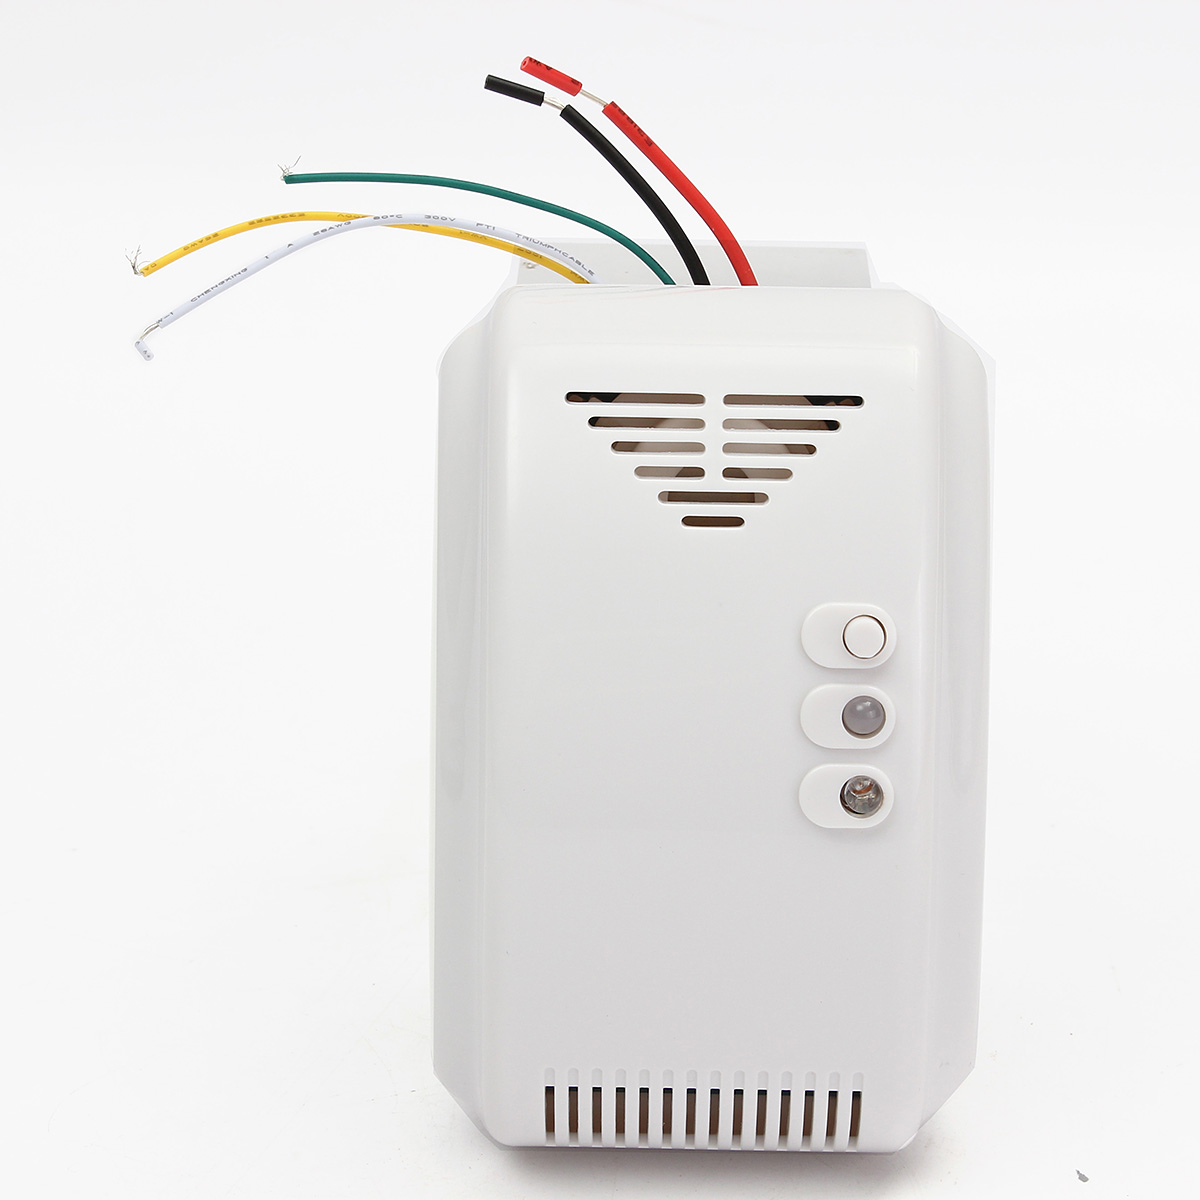 12V Gas Detector Sensor Alarm Propane Butane LPG Natural Motorhome For Home Alarm System Security